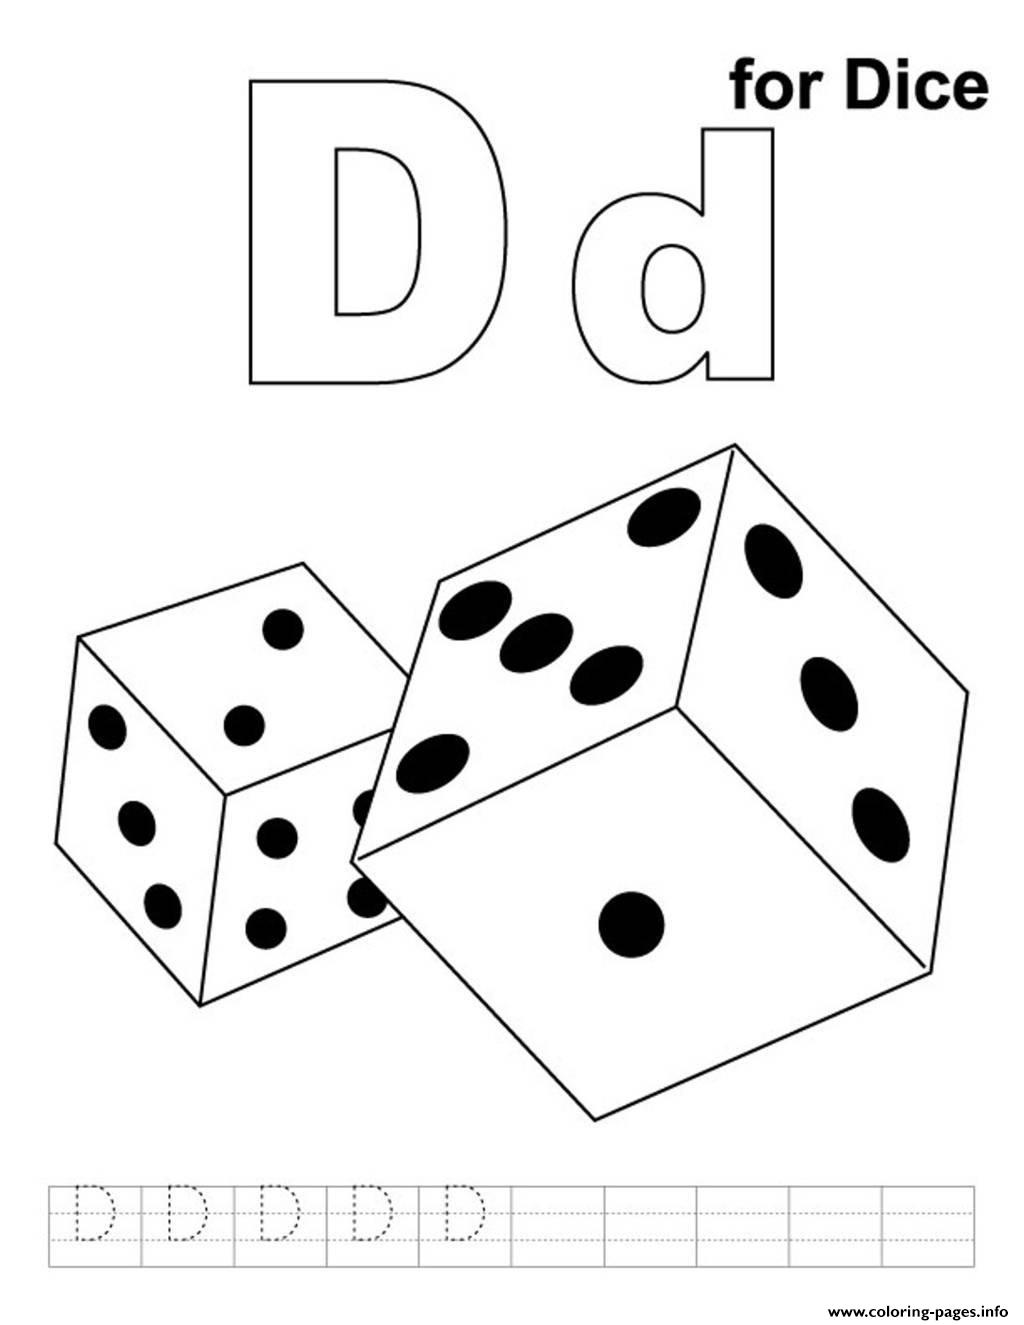 dice to print dice coloring pages dice print to